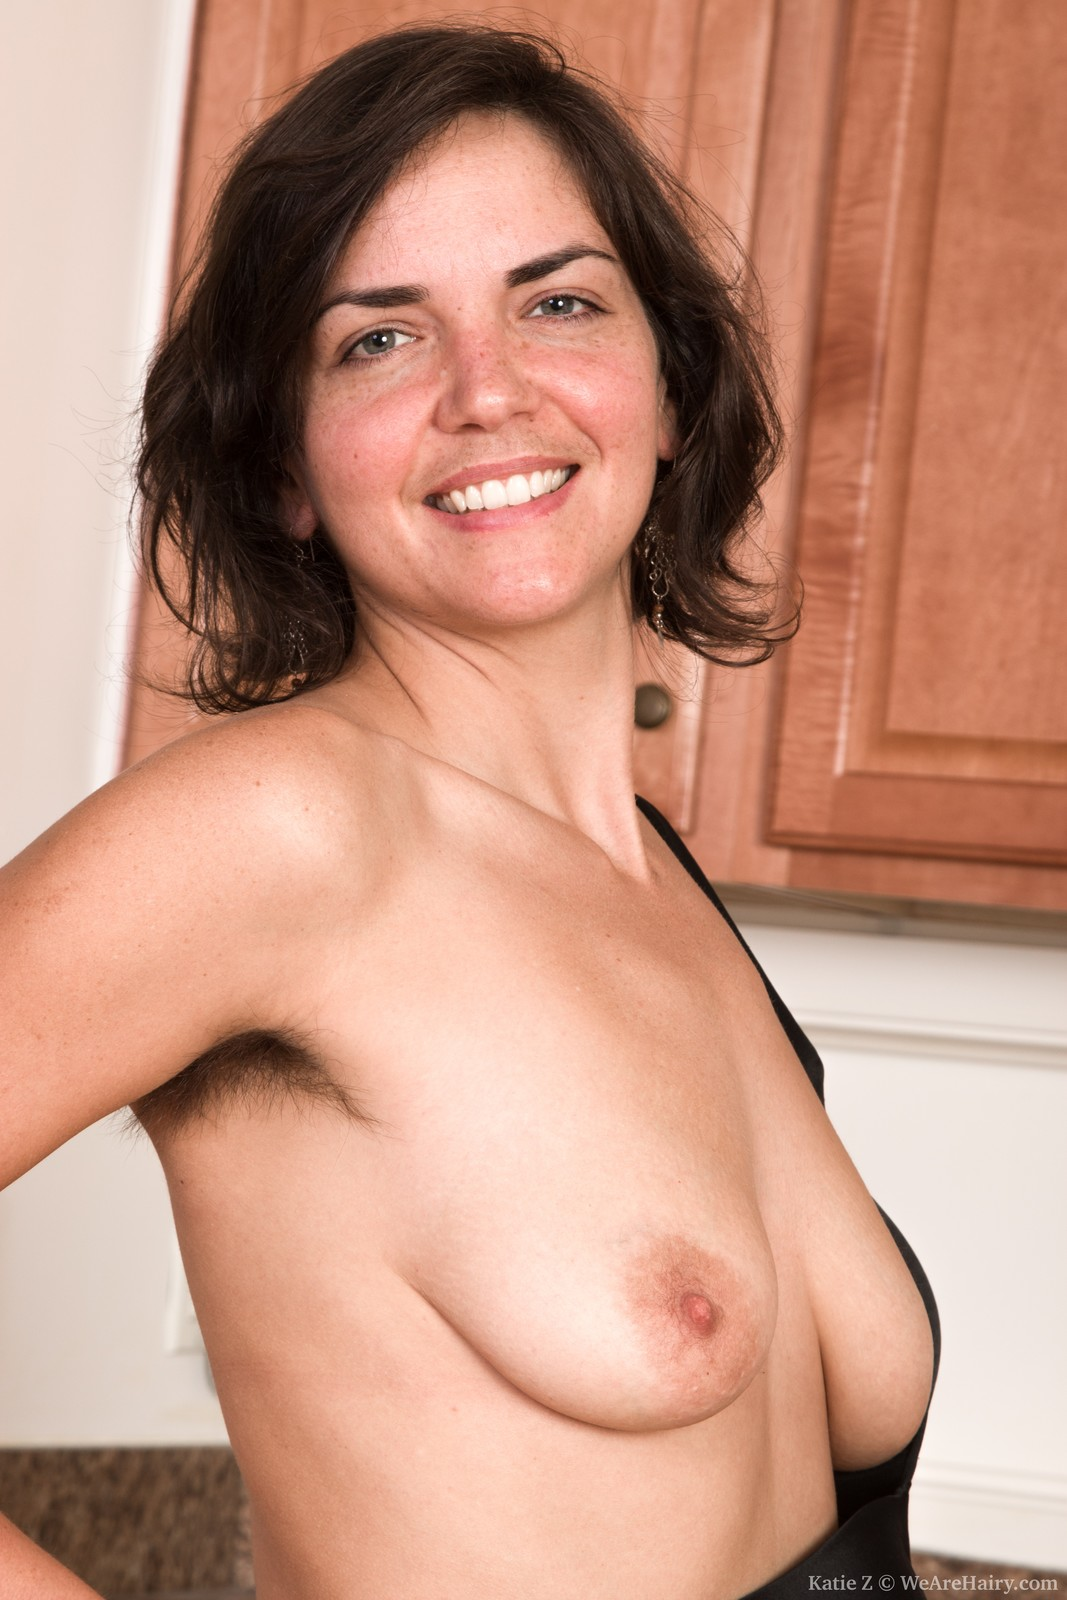 wpid-katie-z-strips-naked-in-the-kitchen-for-all9.jpg